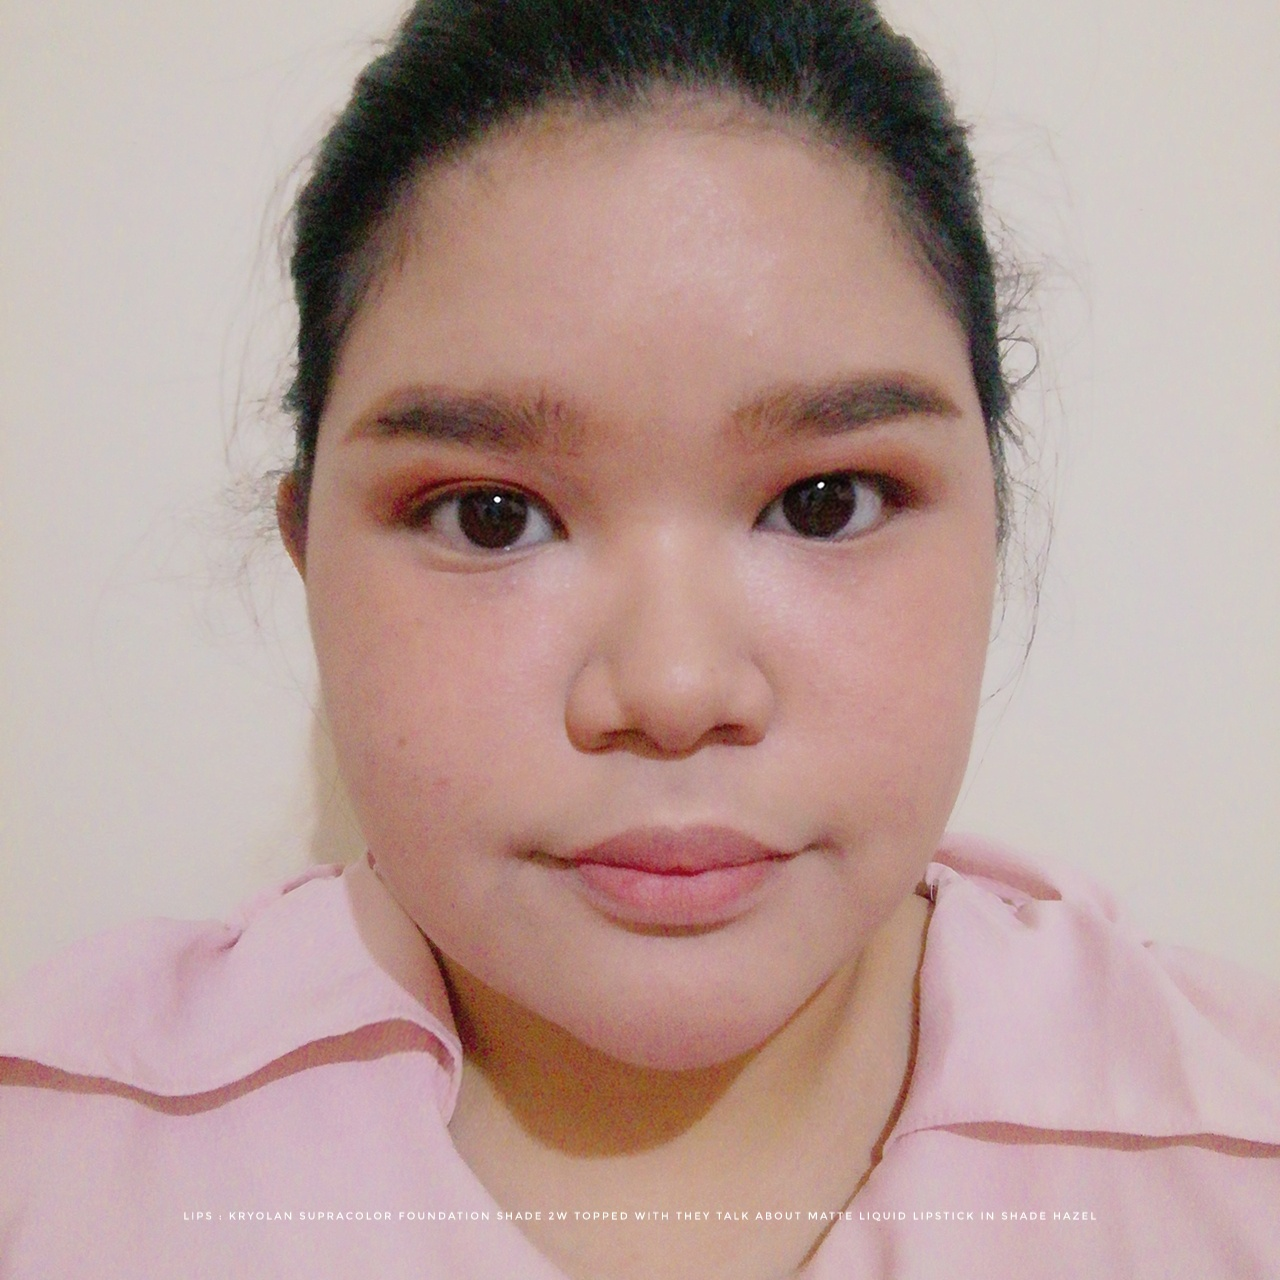 STROBING MAKE-UP USING DRUGSTORE PRODUCTS